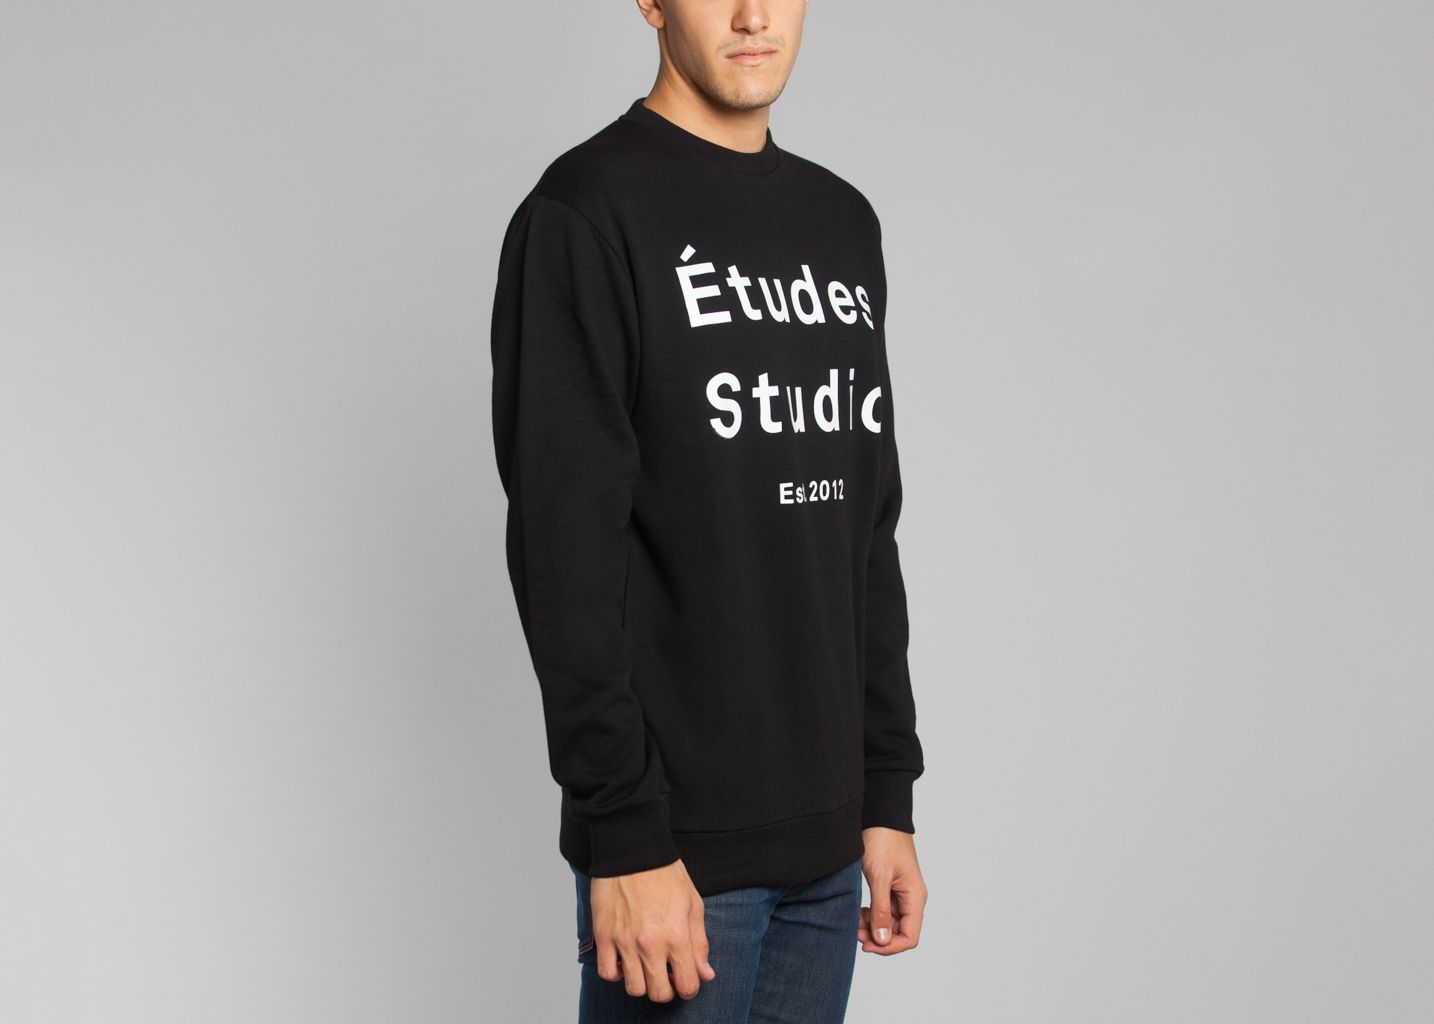 Sweat Etudes Studio - Etudes